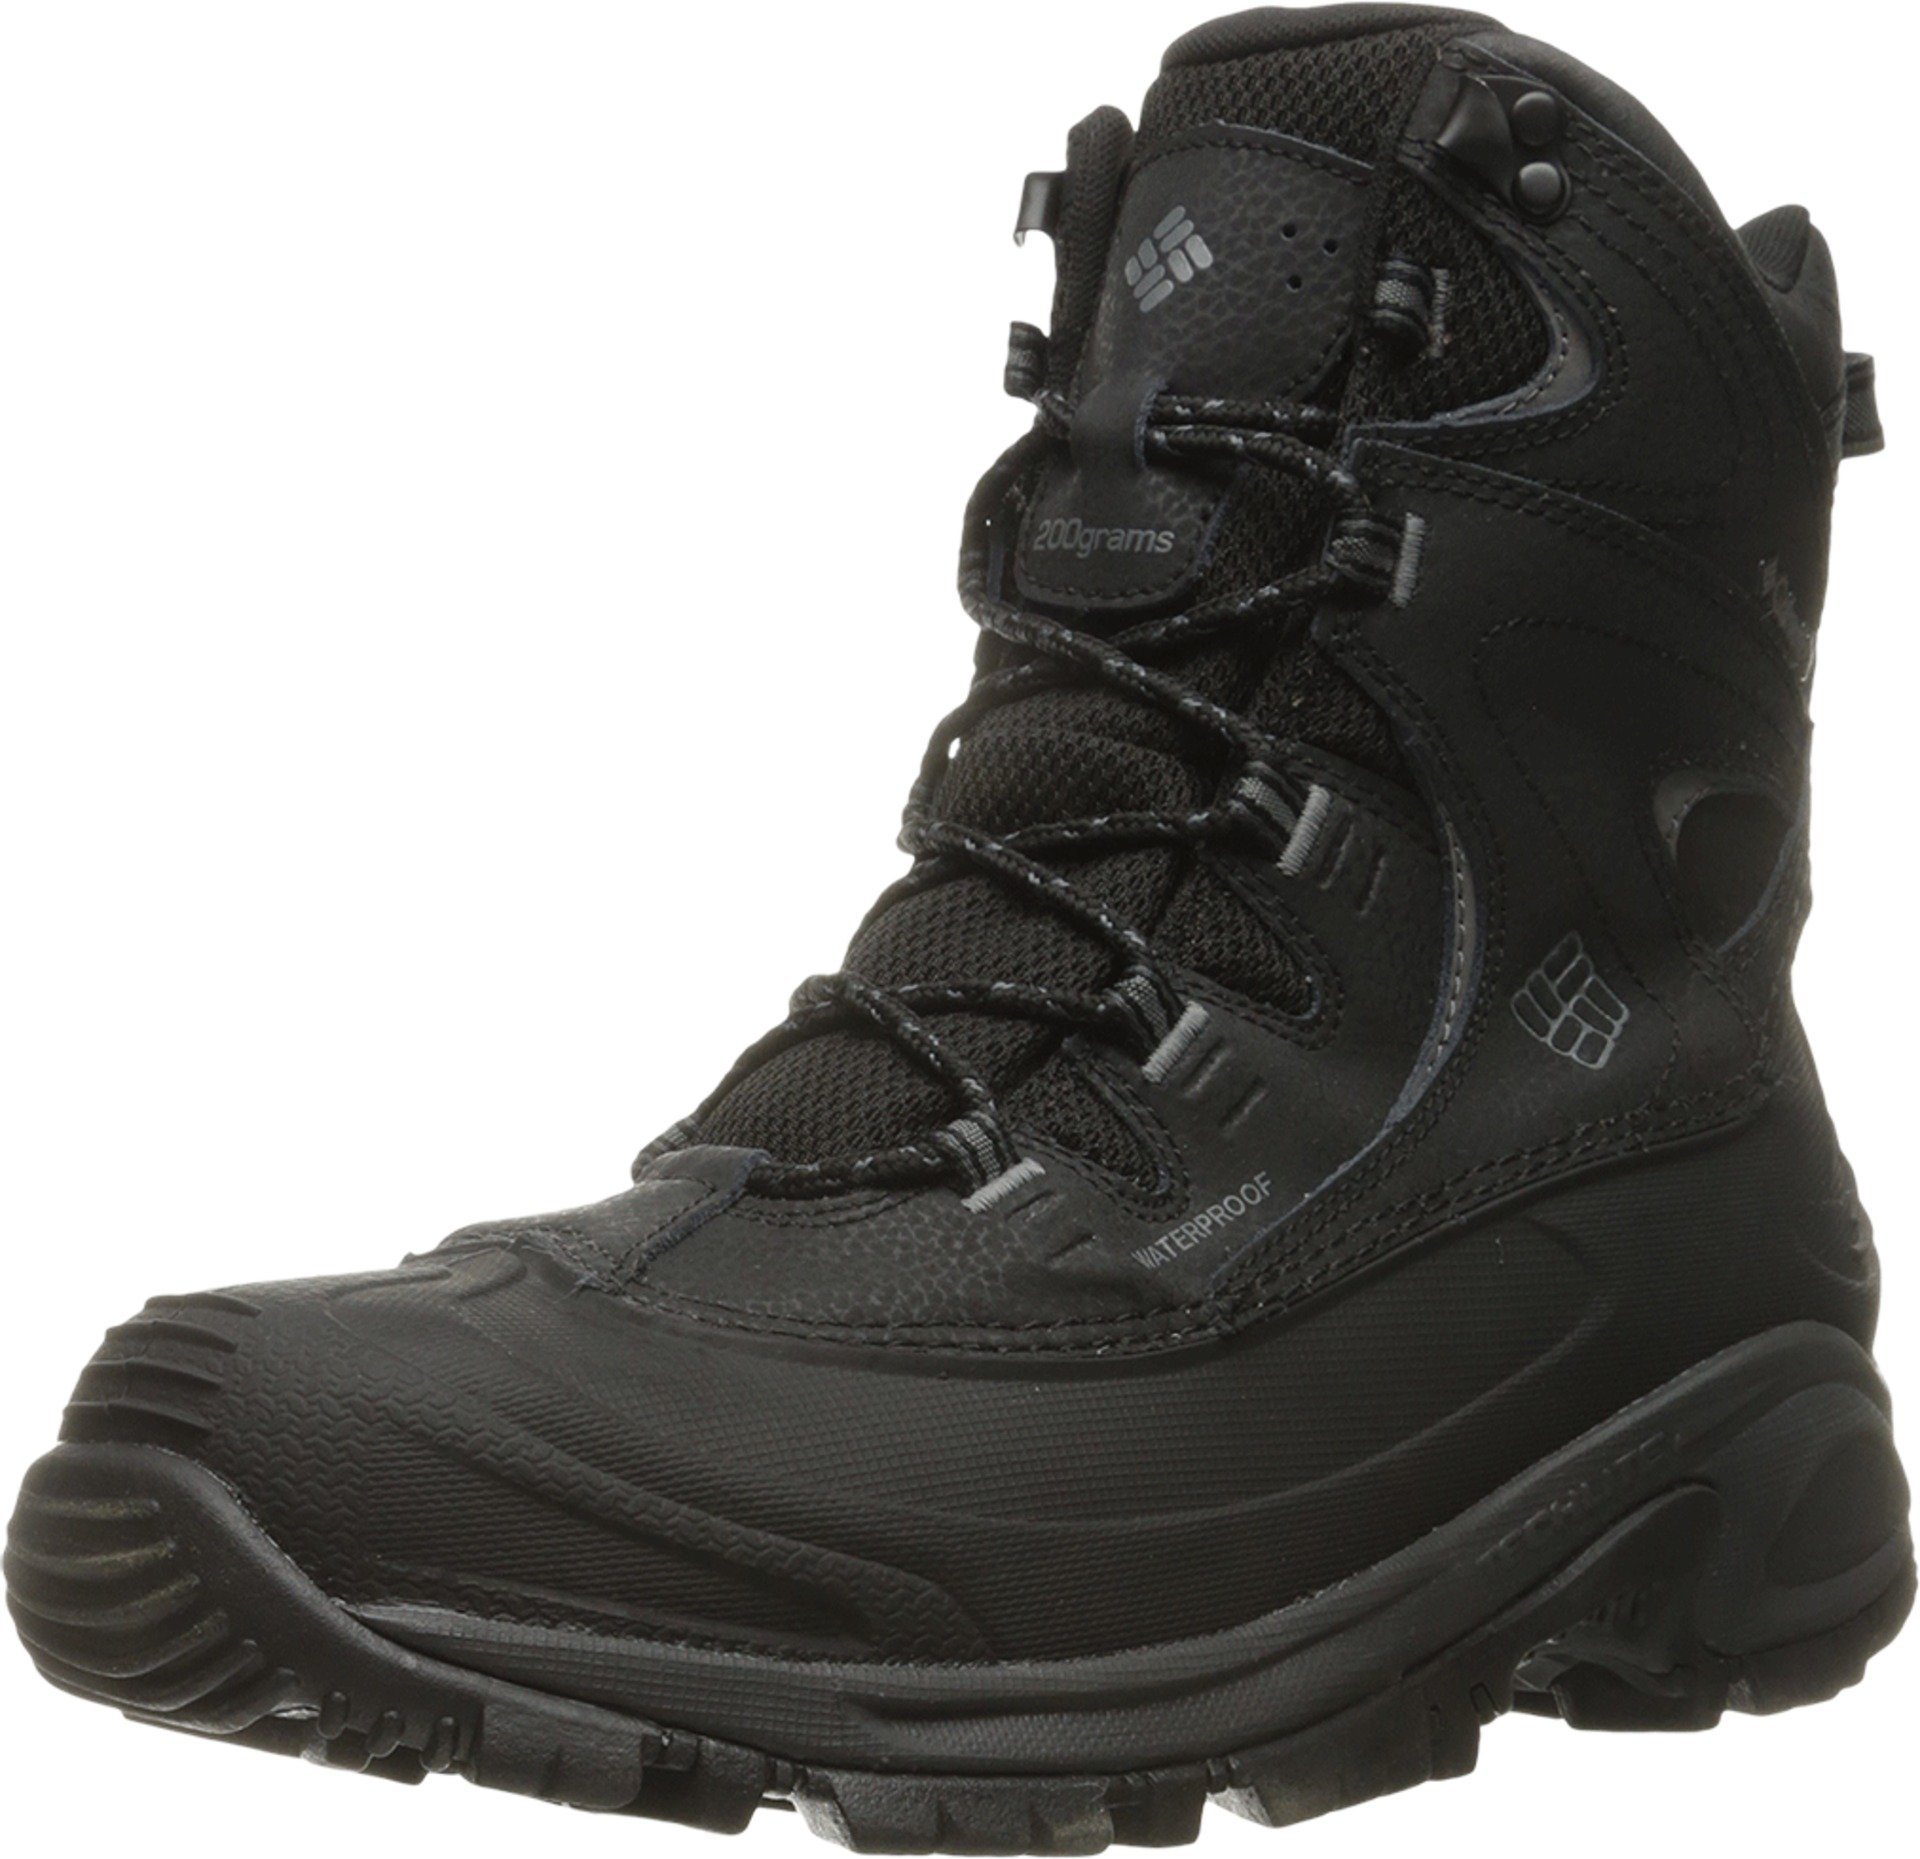 Columbia Men's Bugaboot Ii Snow Boot, Black, Charcoal, 9.5 D US